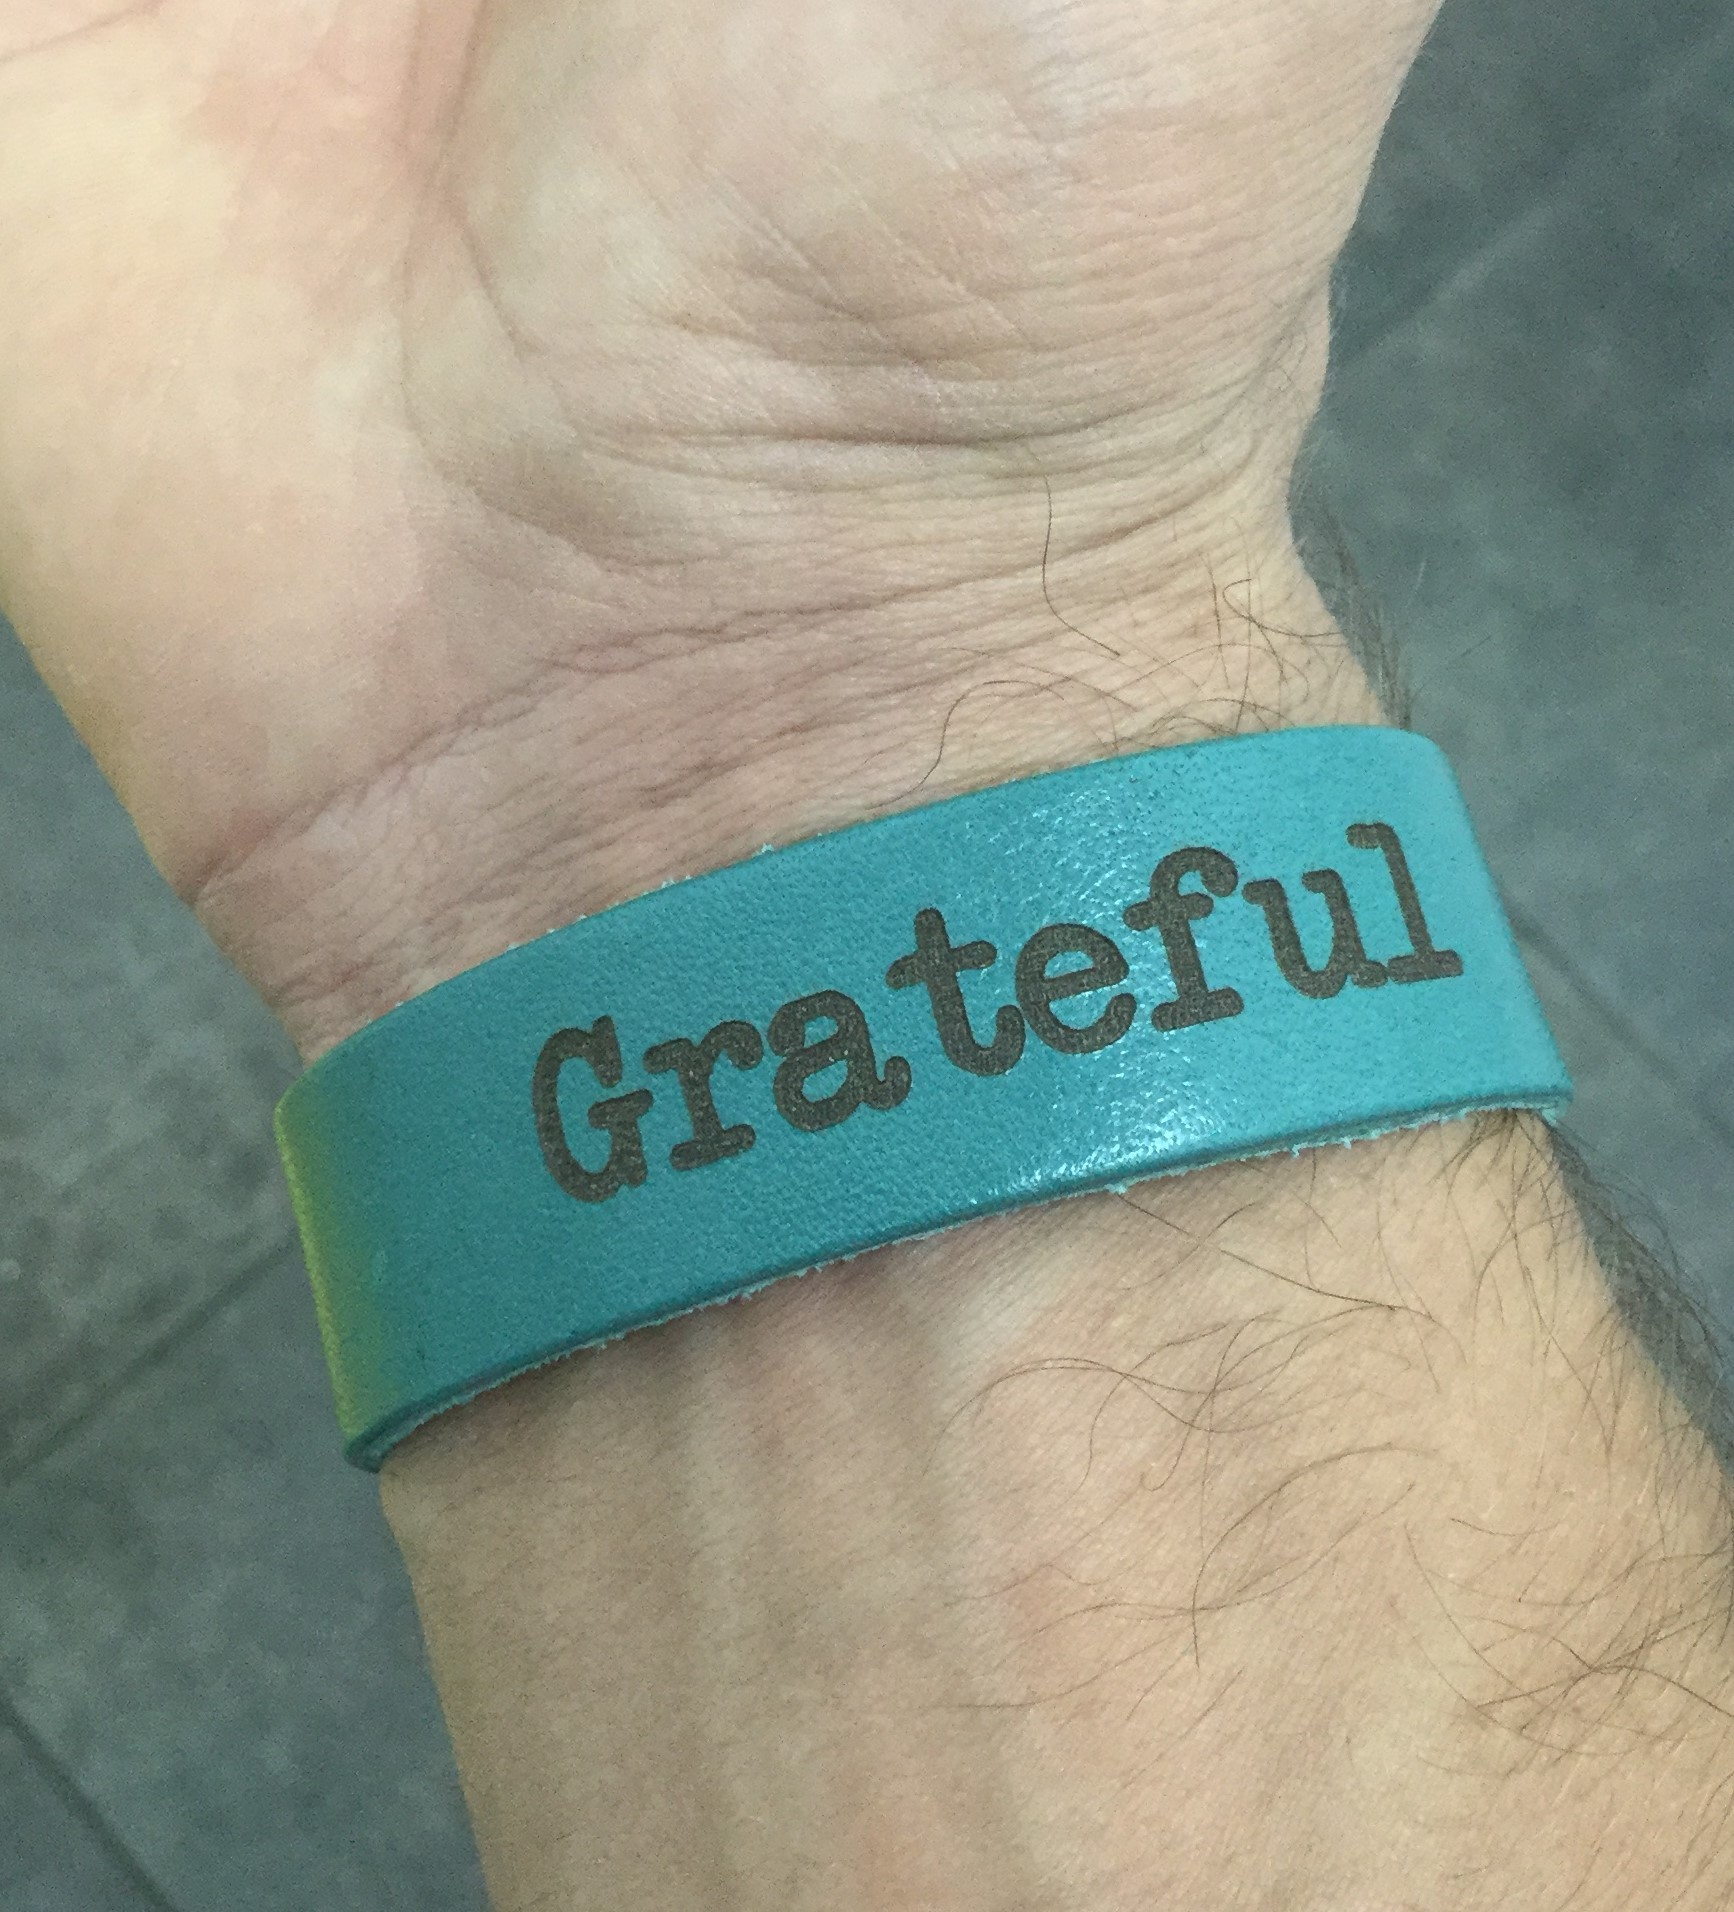 Leather Grateful Bracelet Teal w/ Beads Size & Fit Guide